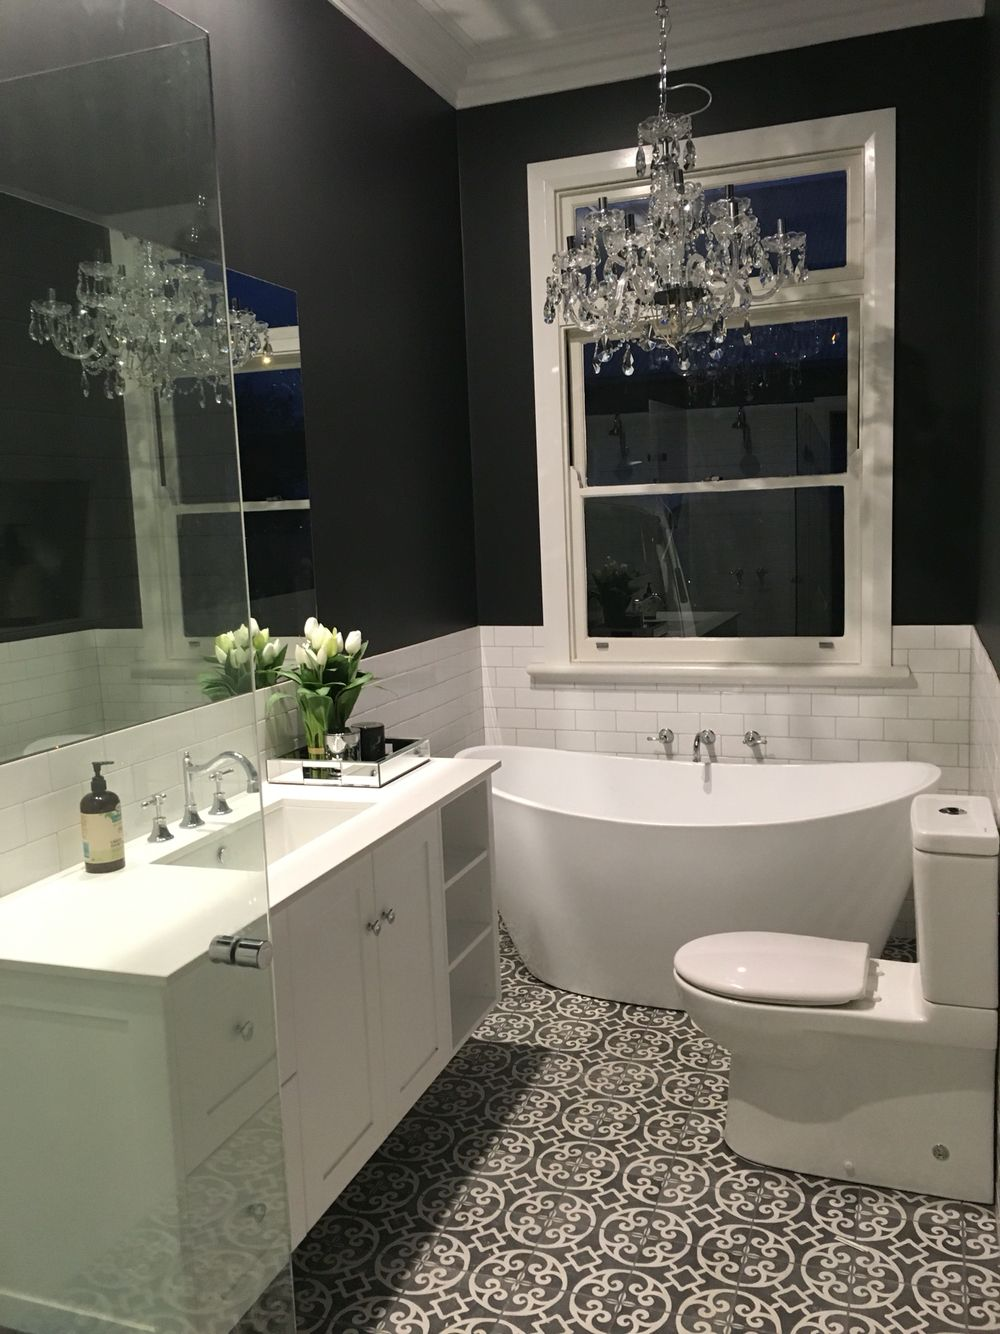 Grey And White Bathroom Floor Tiles Are Artisan Casablanca In Charcoal Wall Tiles Are 150x75 Charcoal Bathroom Artisan Tiles Bathroom White Bathroom Tiles